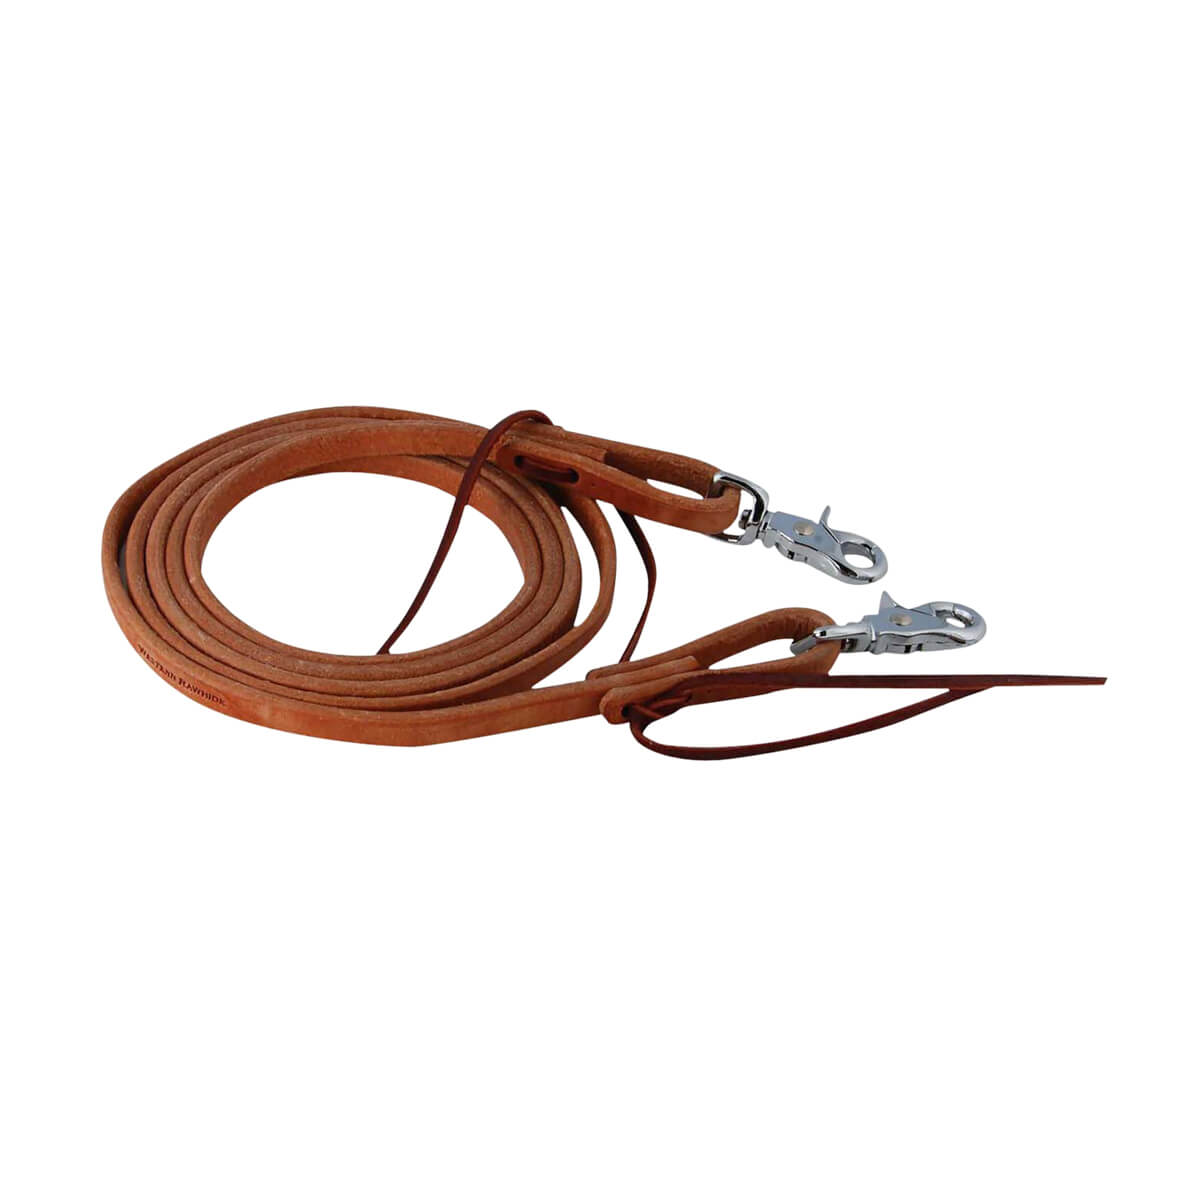 "1/2"" Roping Reins 7' to 7' 6"" - Harness Leather"